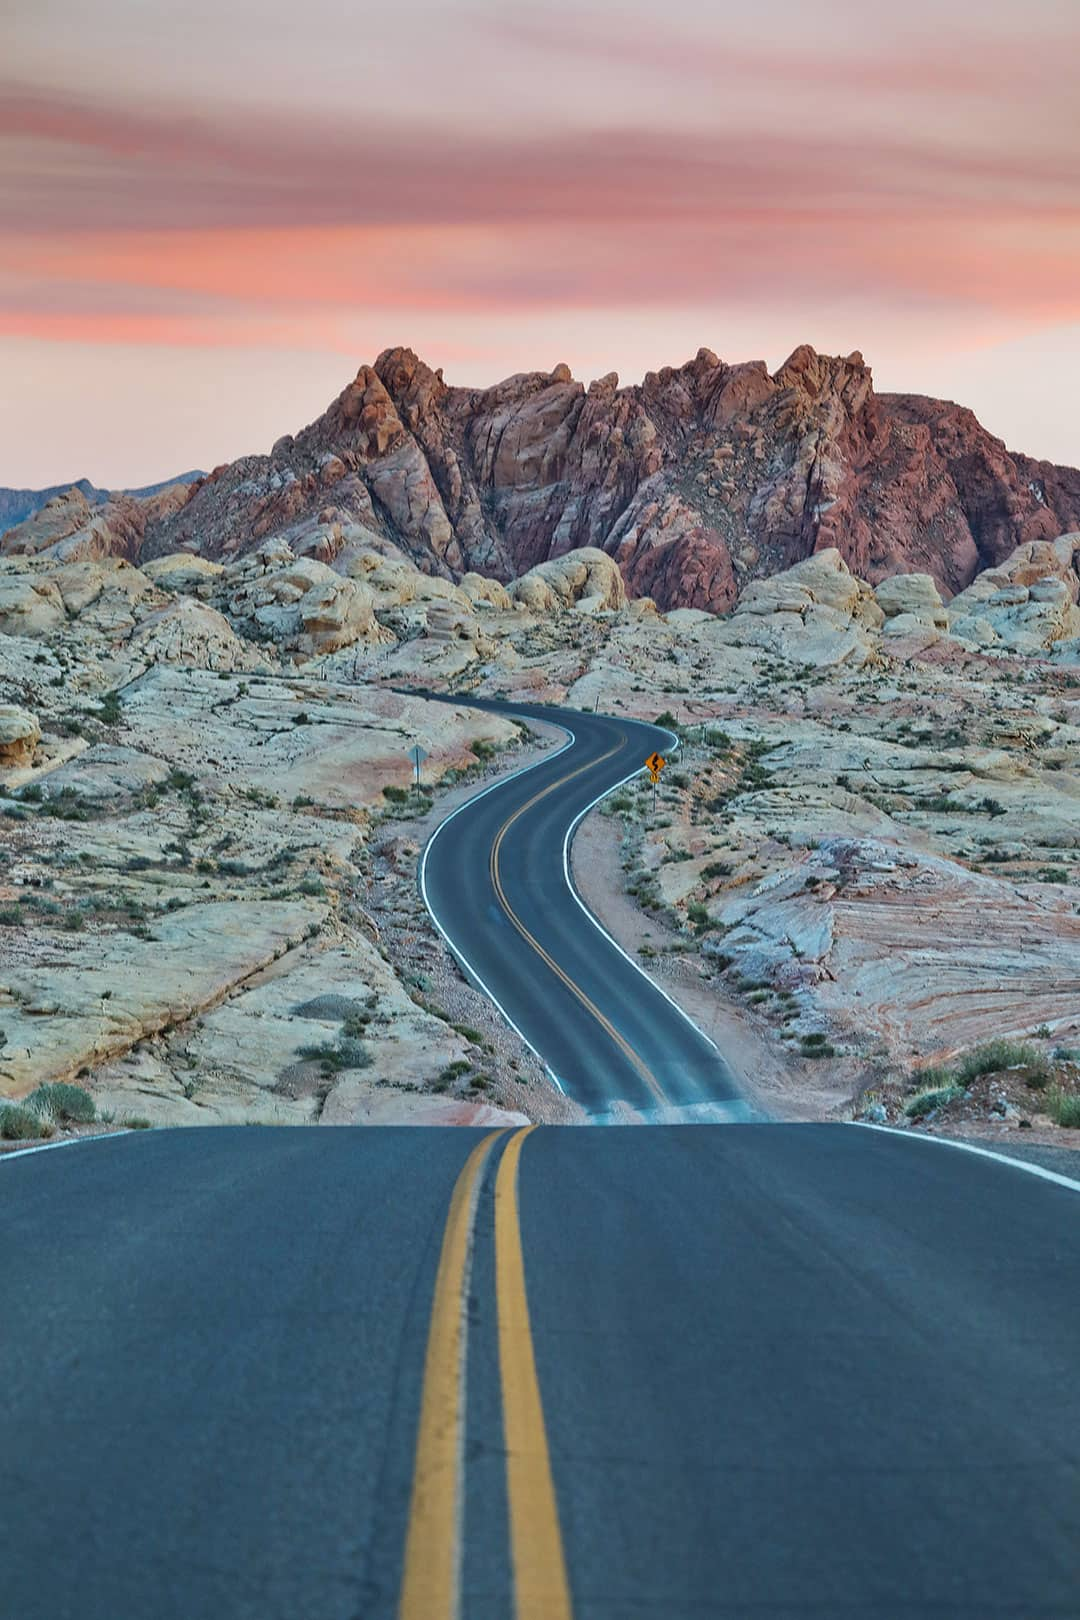 The Road at the Valley of Fire Las Vegas